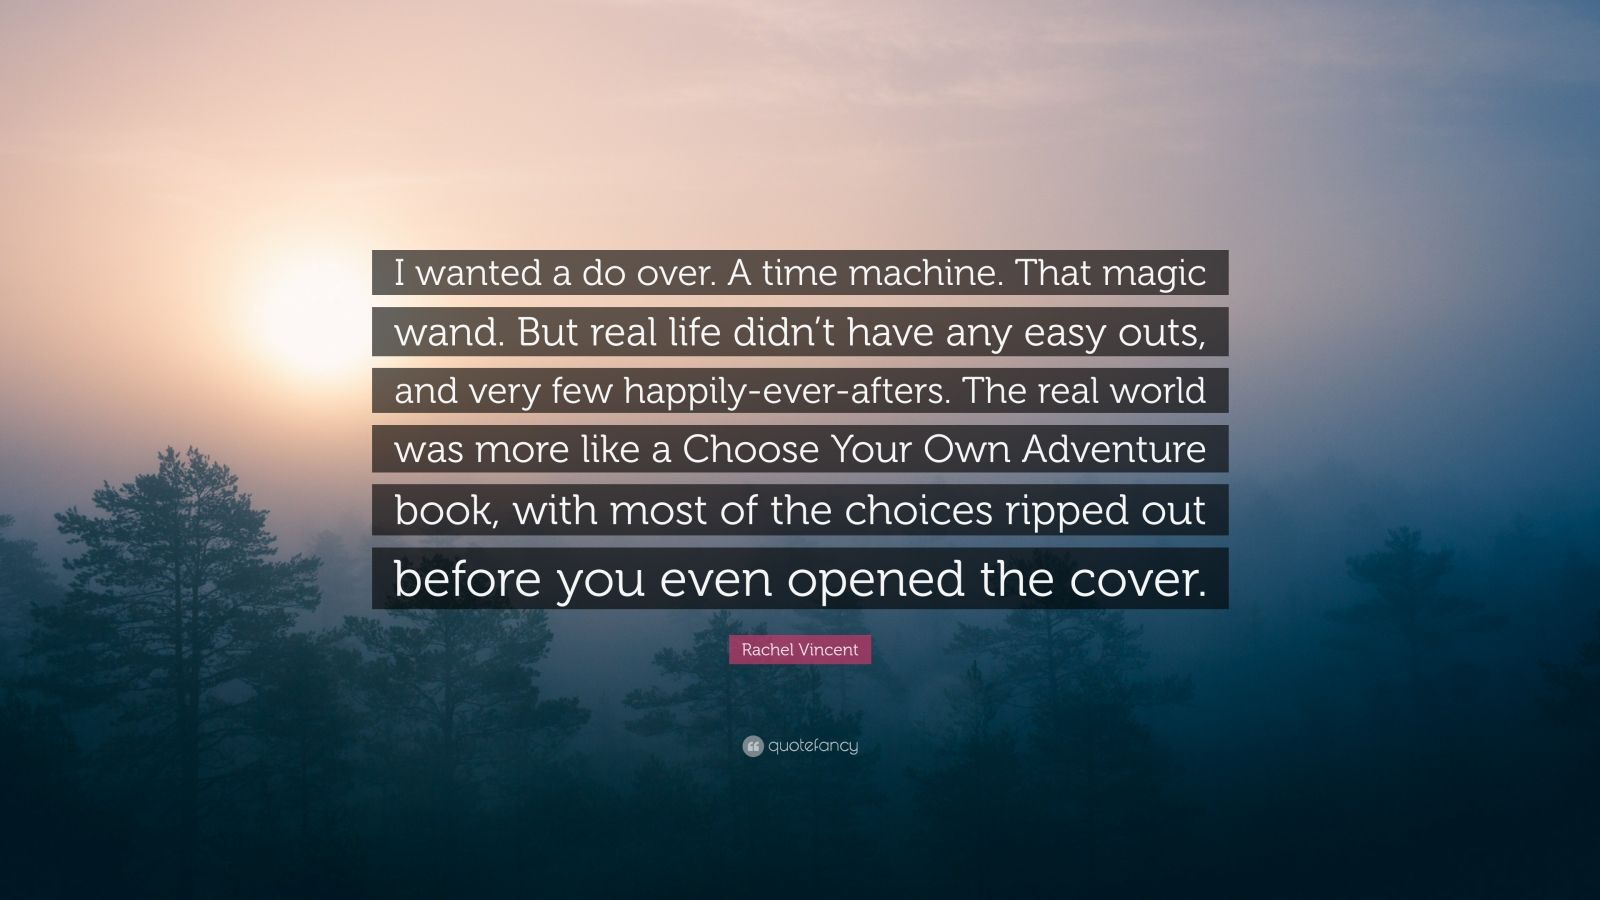 "Rachel Vincent Quote: ""I wanted a do over. A time machine. That magic wand. But real life didn't have any easy outs, and very few happily-ever-afters. The real world was more like a Choose Your Own Adventure book, with most of the choices ripped out before you even opened the cover."""